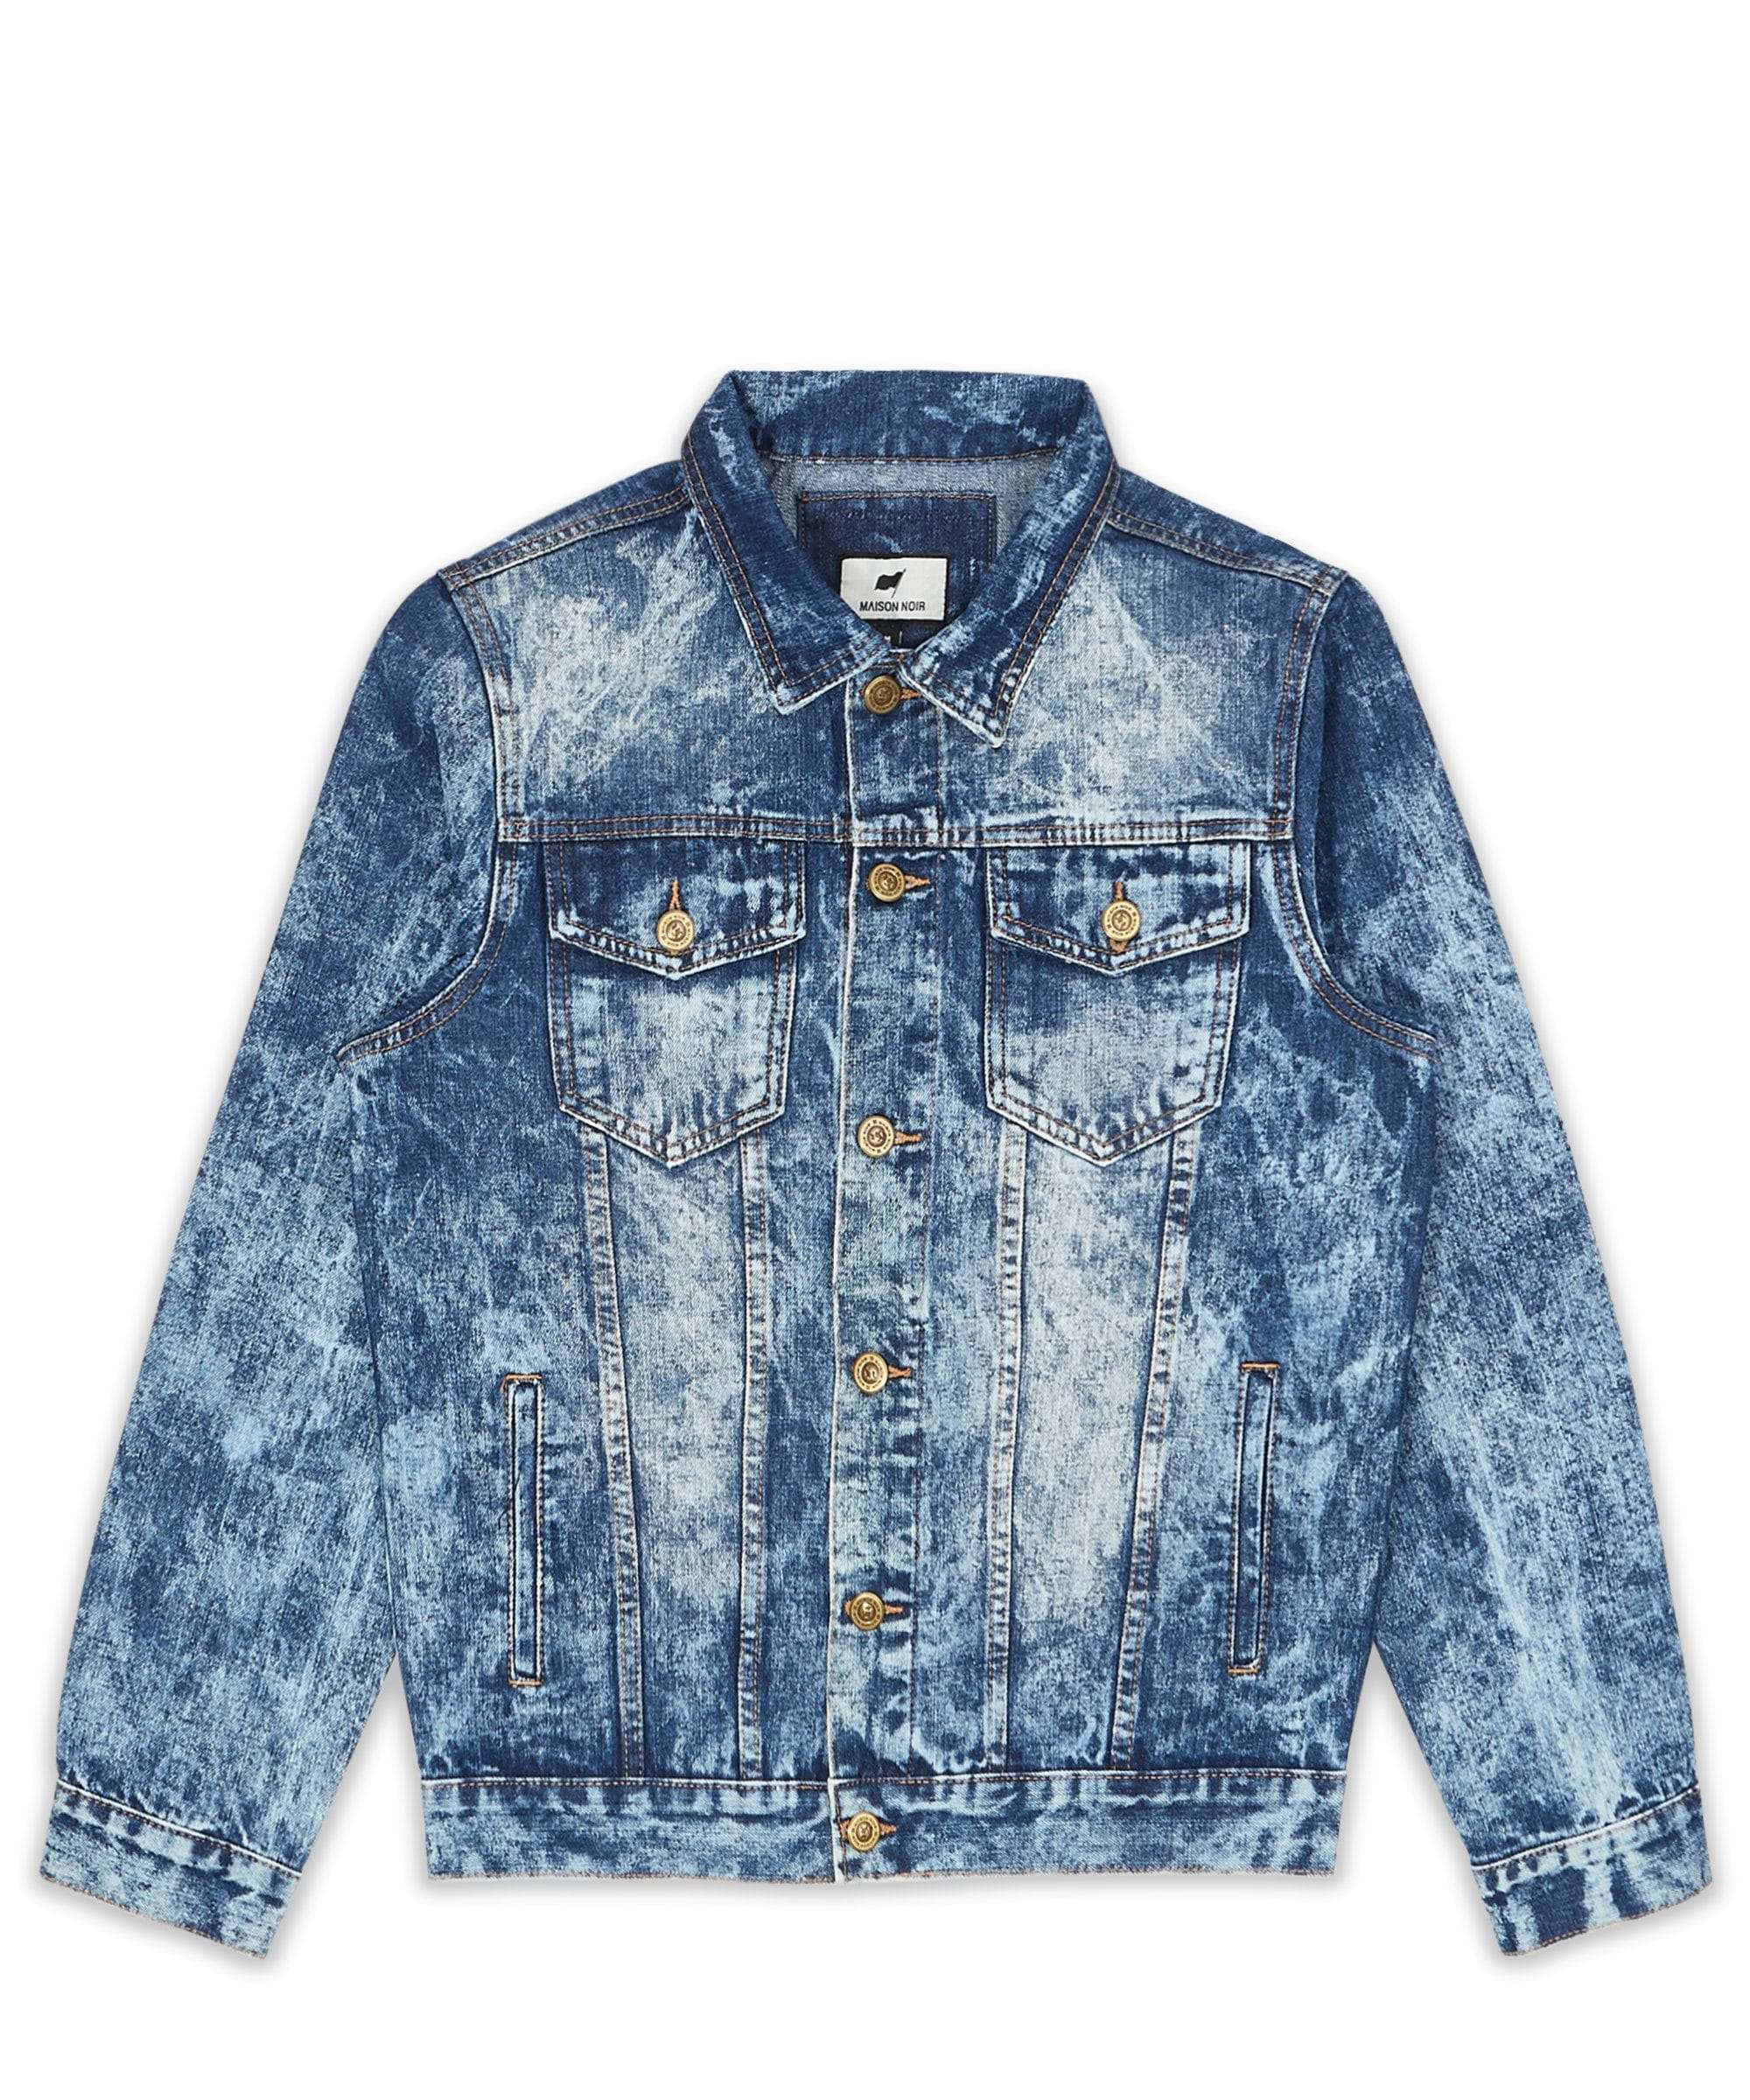 WRIGHT DENIM JACKET MAISON NOIR